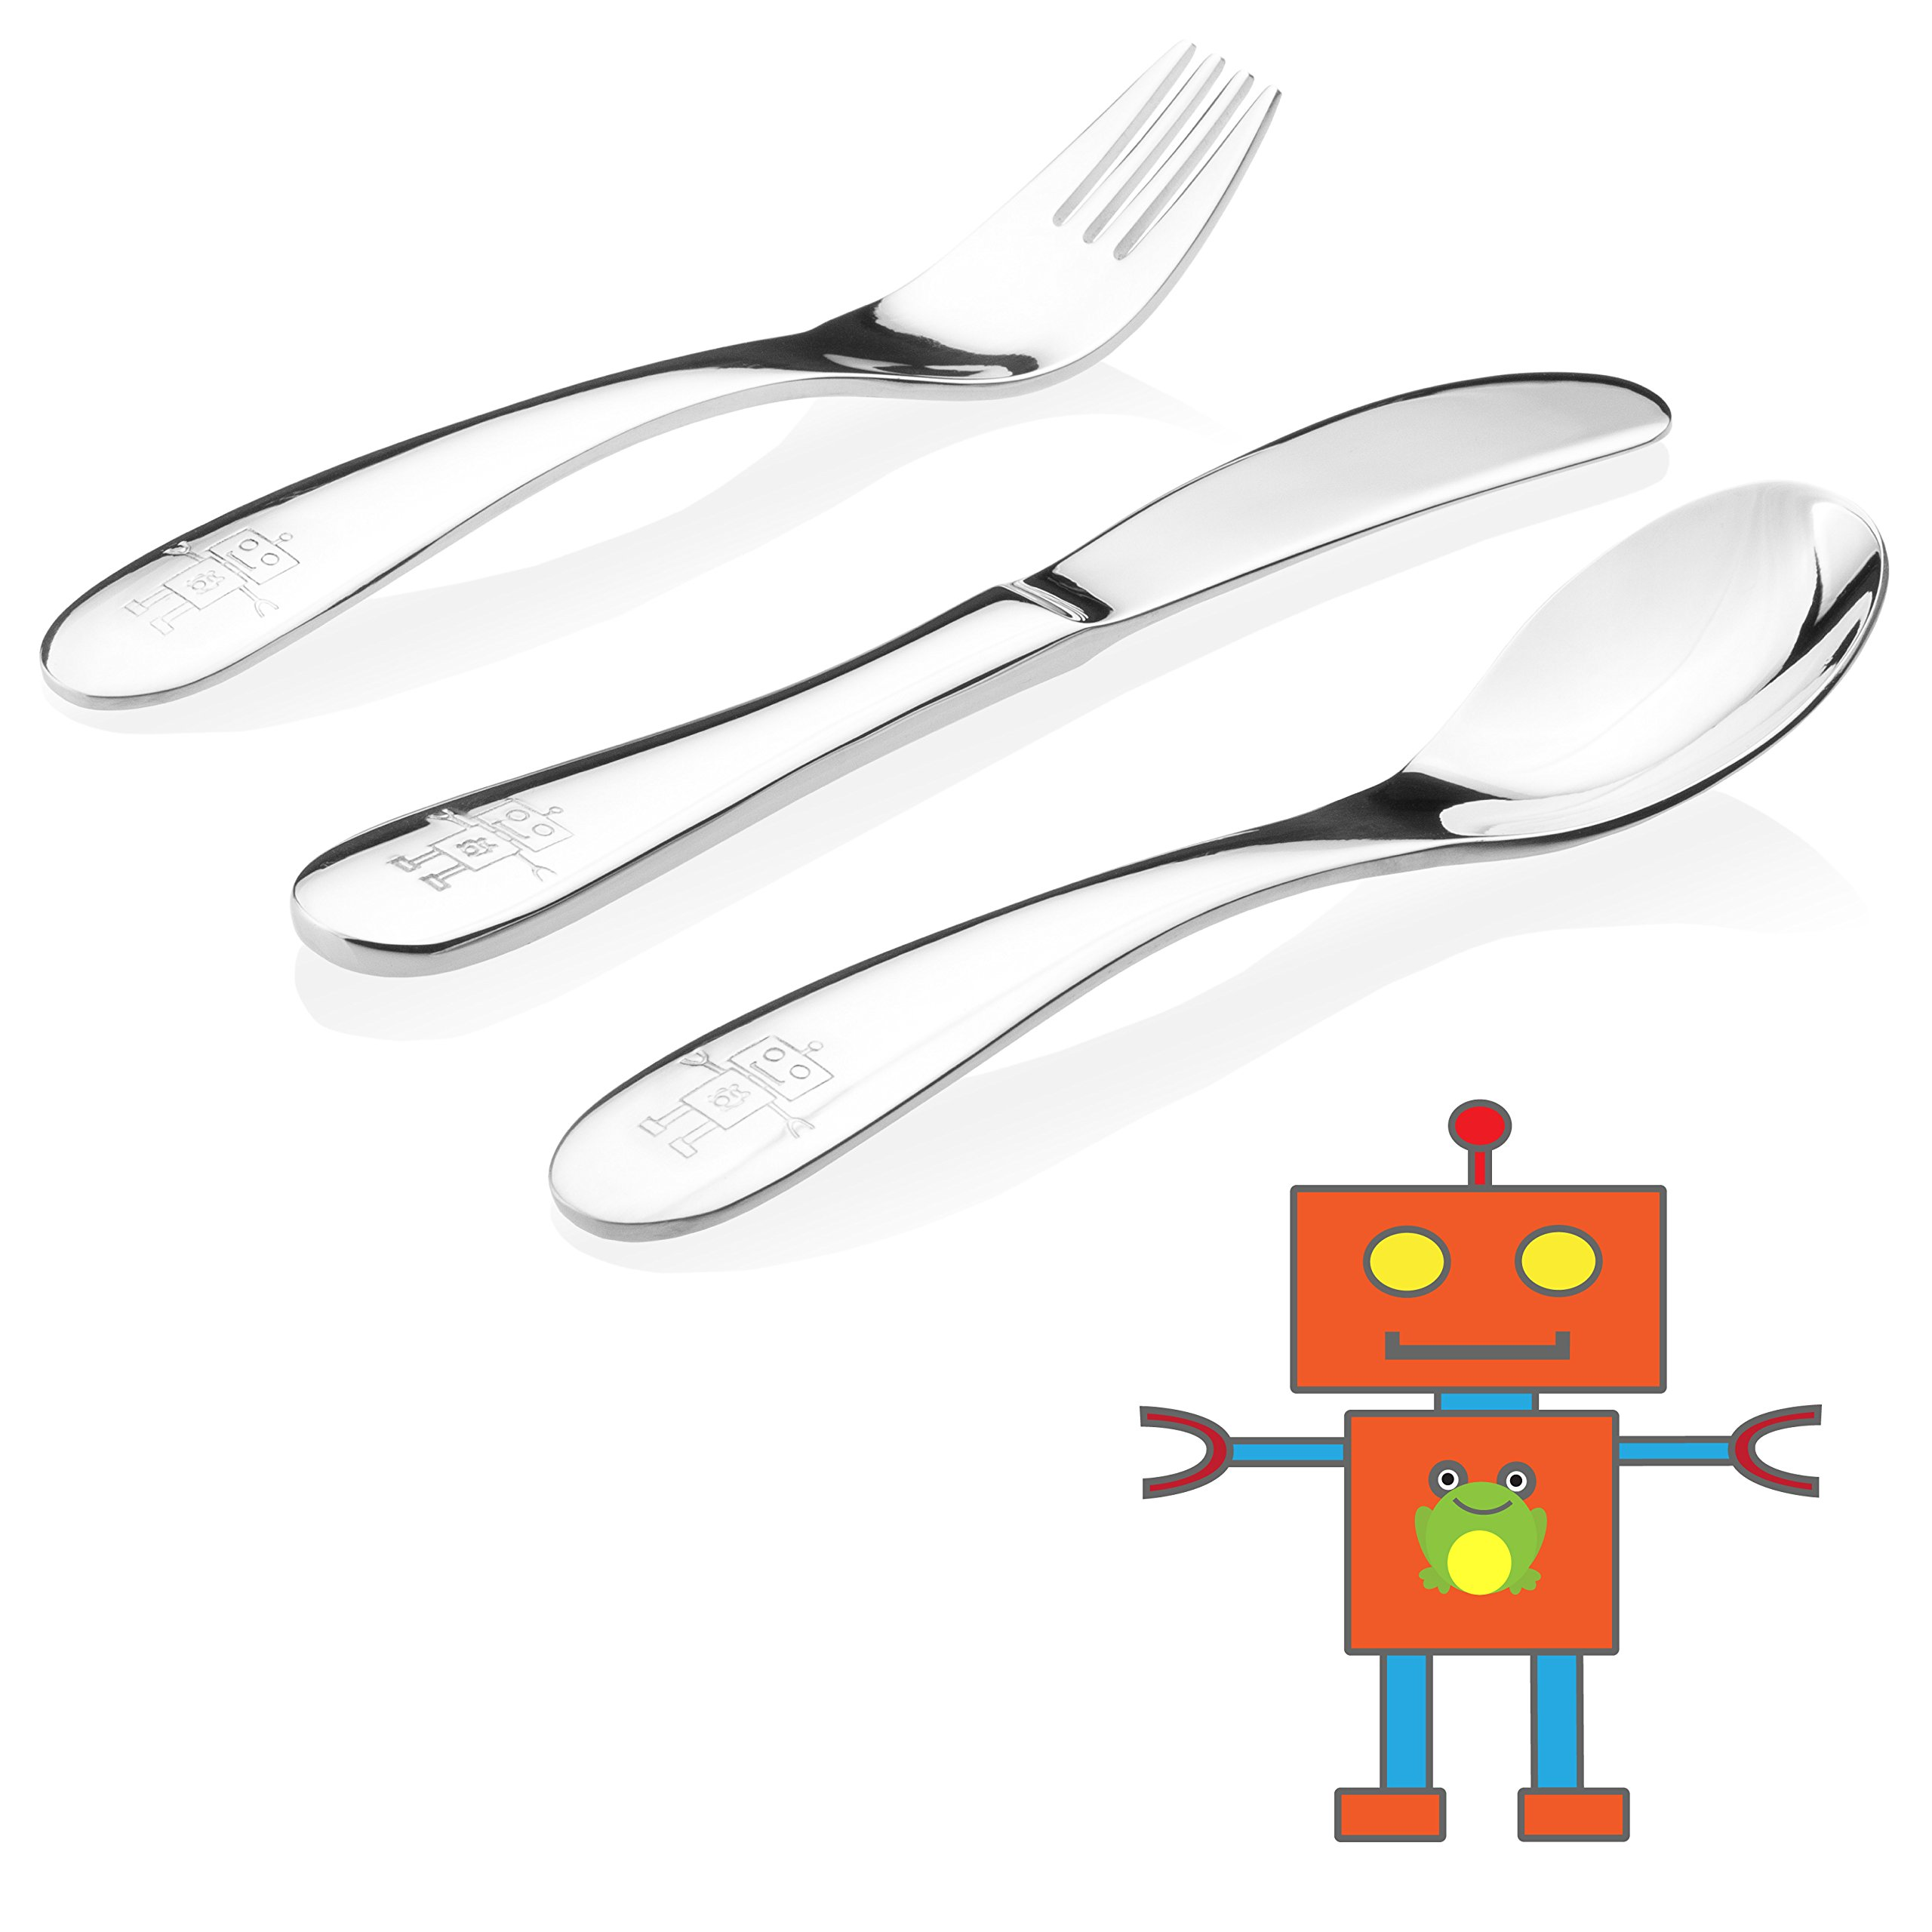 Kiddobloom Kids Stainless Steel Utensil Set, Robot Model, set of 3 (Spoon, Fork, and Butter Knife) Perfect for Preschoolers